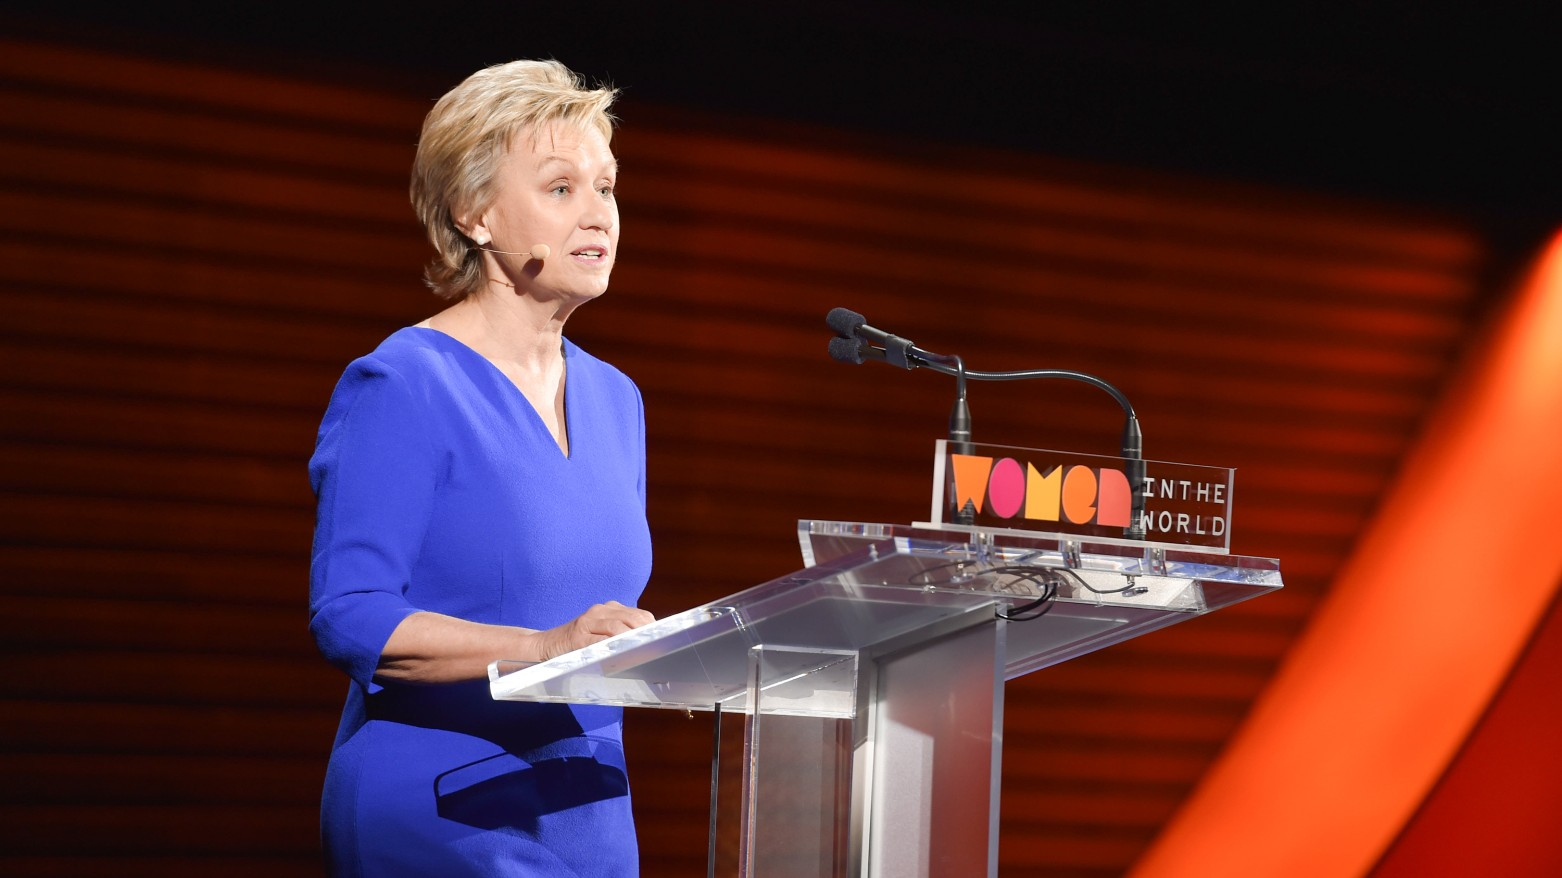 Tina Brown on Post-Trump Fears and Why Hillary Lost